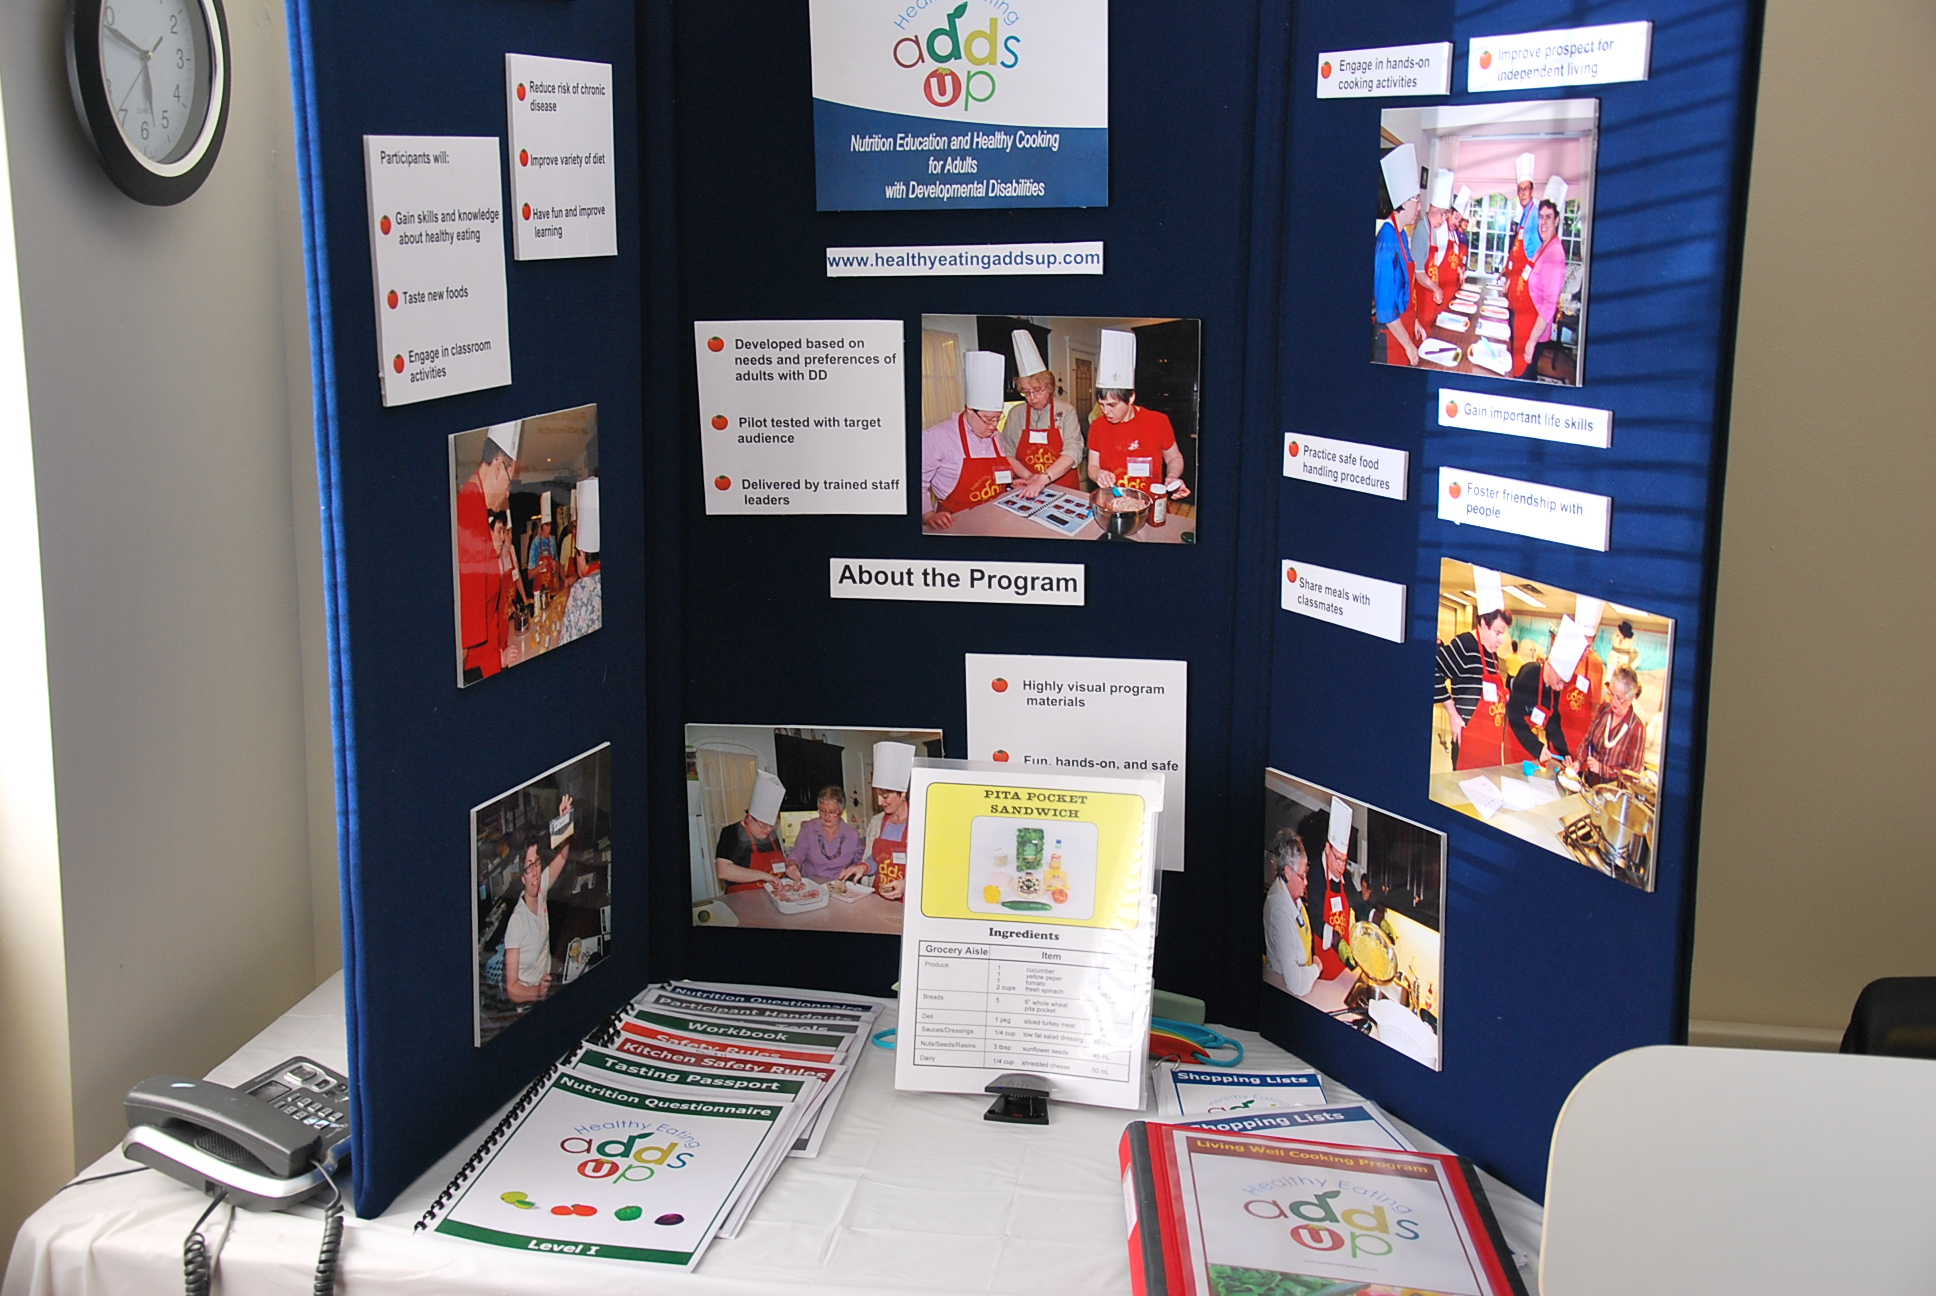 patricipants guide Observes and interacts with participants to guide them in learning the skill or  activity, monitoring their progress and helping them overcome problems.